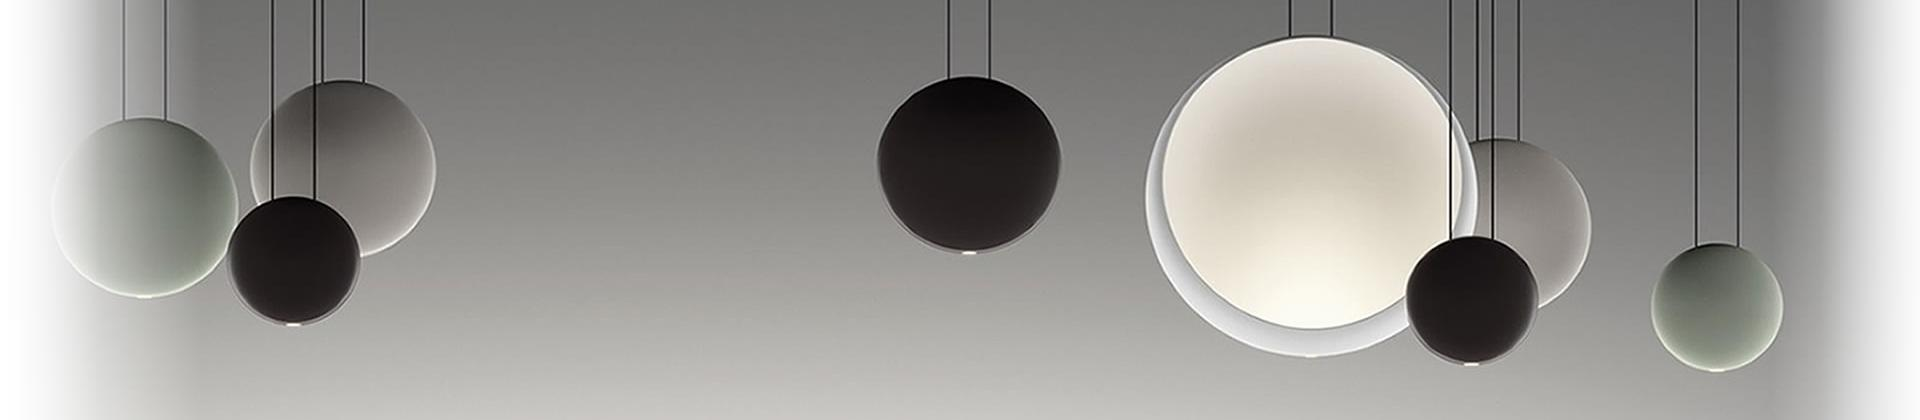 Pin design lamps by Vibia